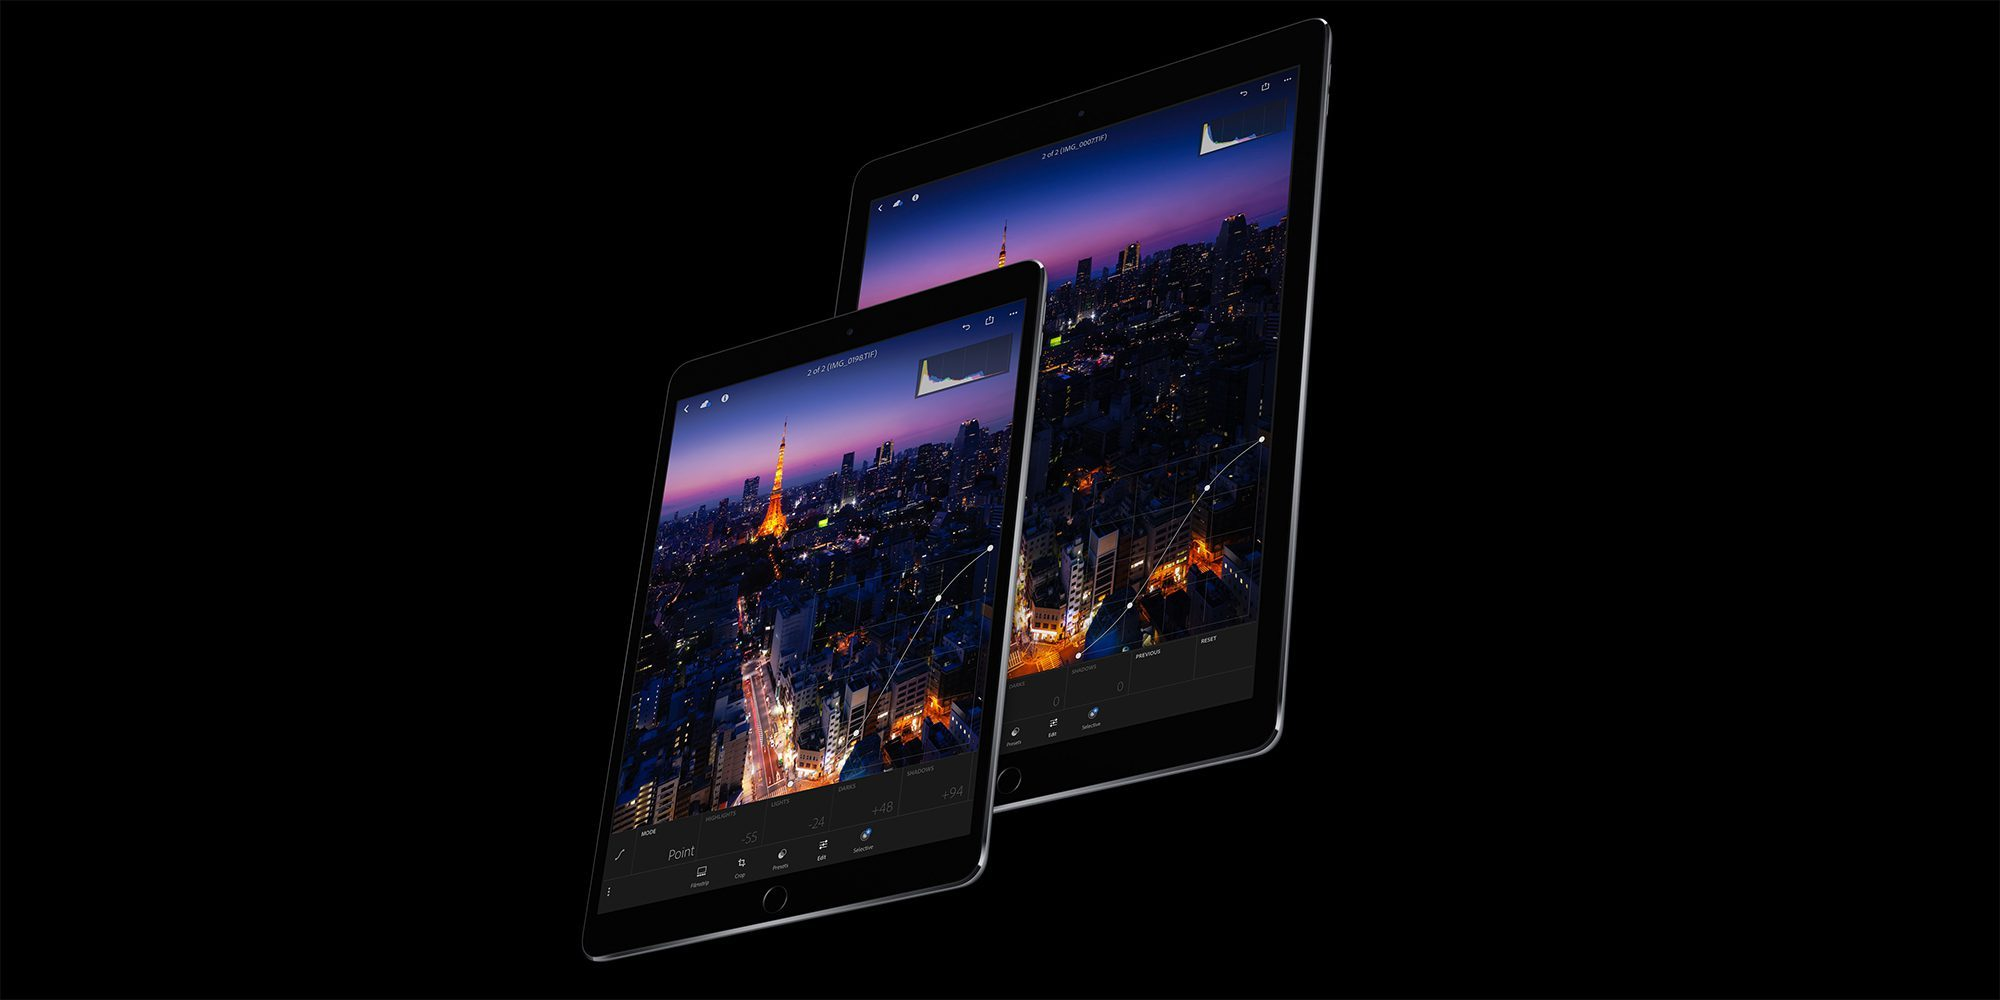 iPad Pro Face ID Details, 4K HDR Video over USB-C, AirPods-like Apple Pencil 2 Pairing, more